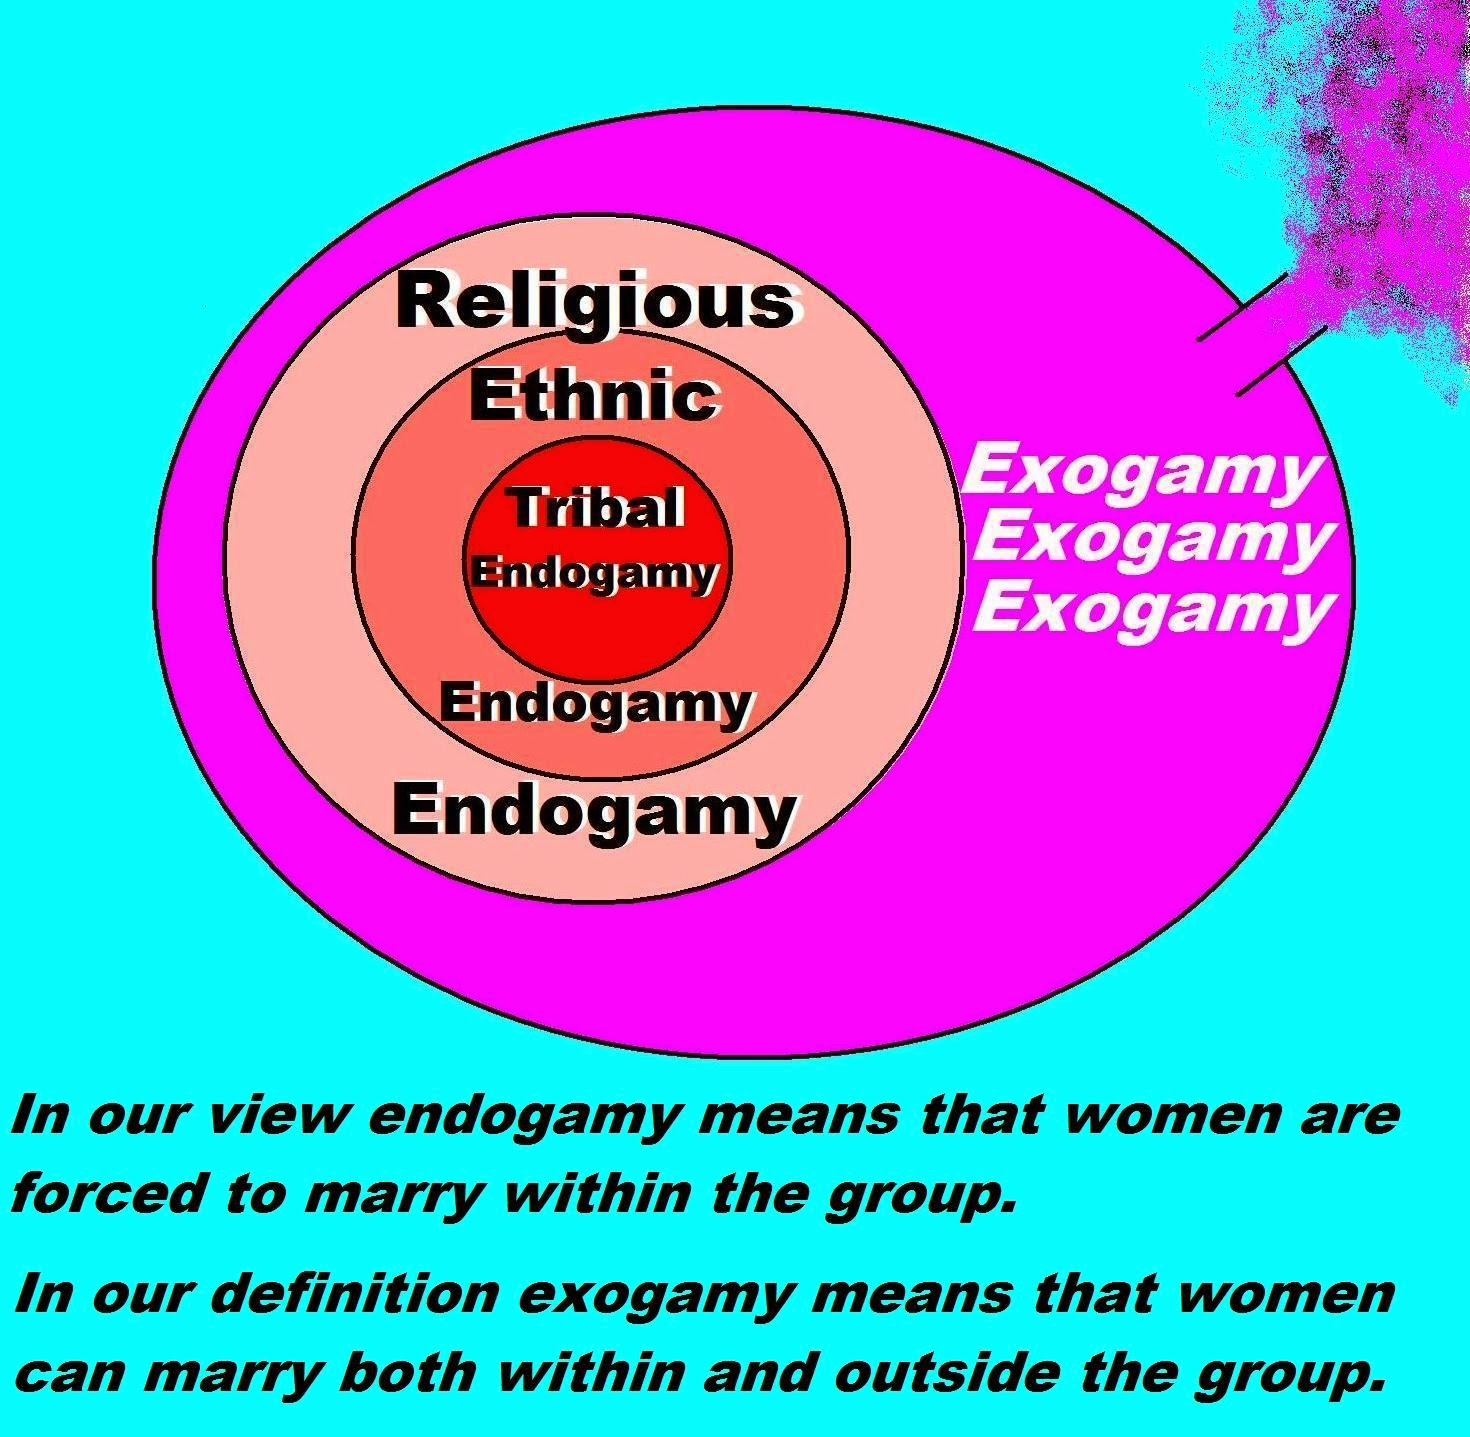 what is the difference between endogamy and exogamy